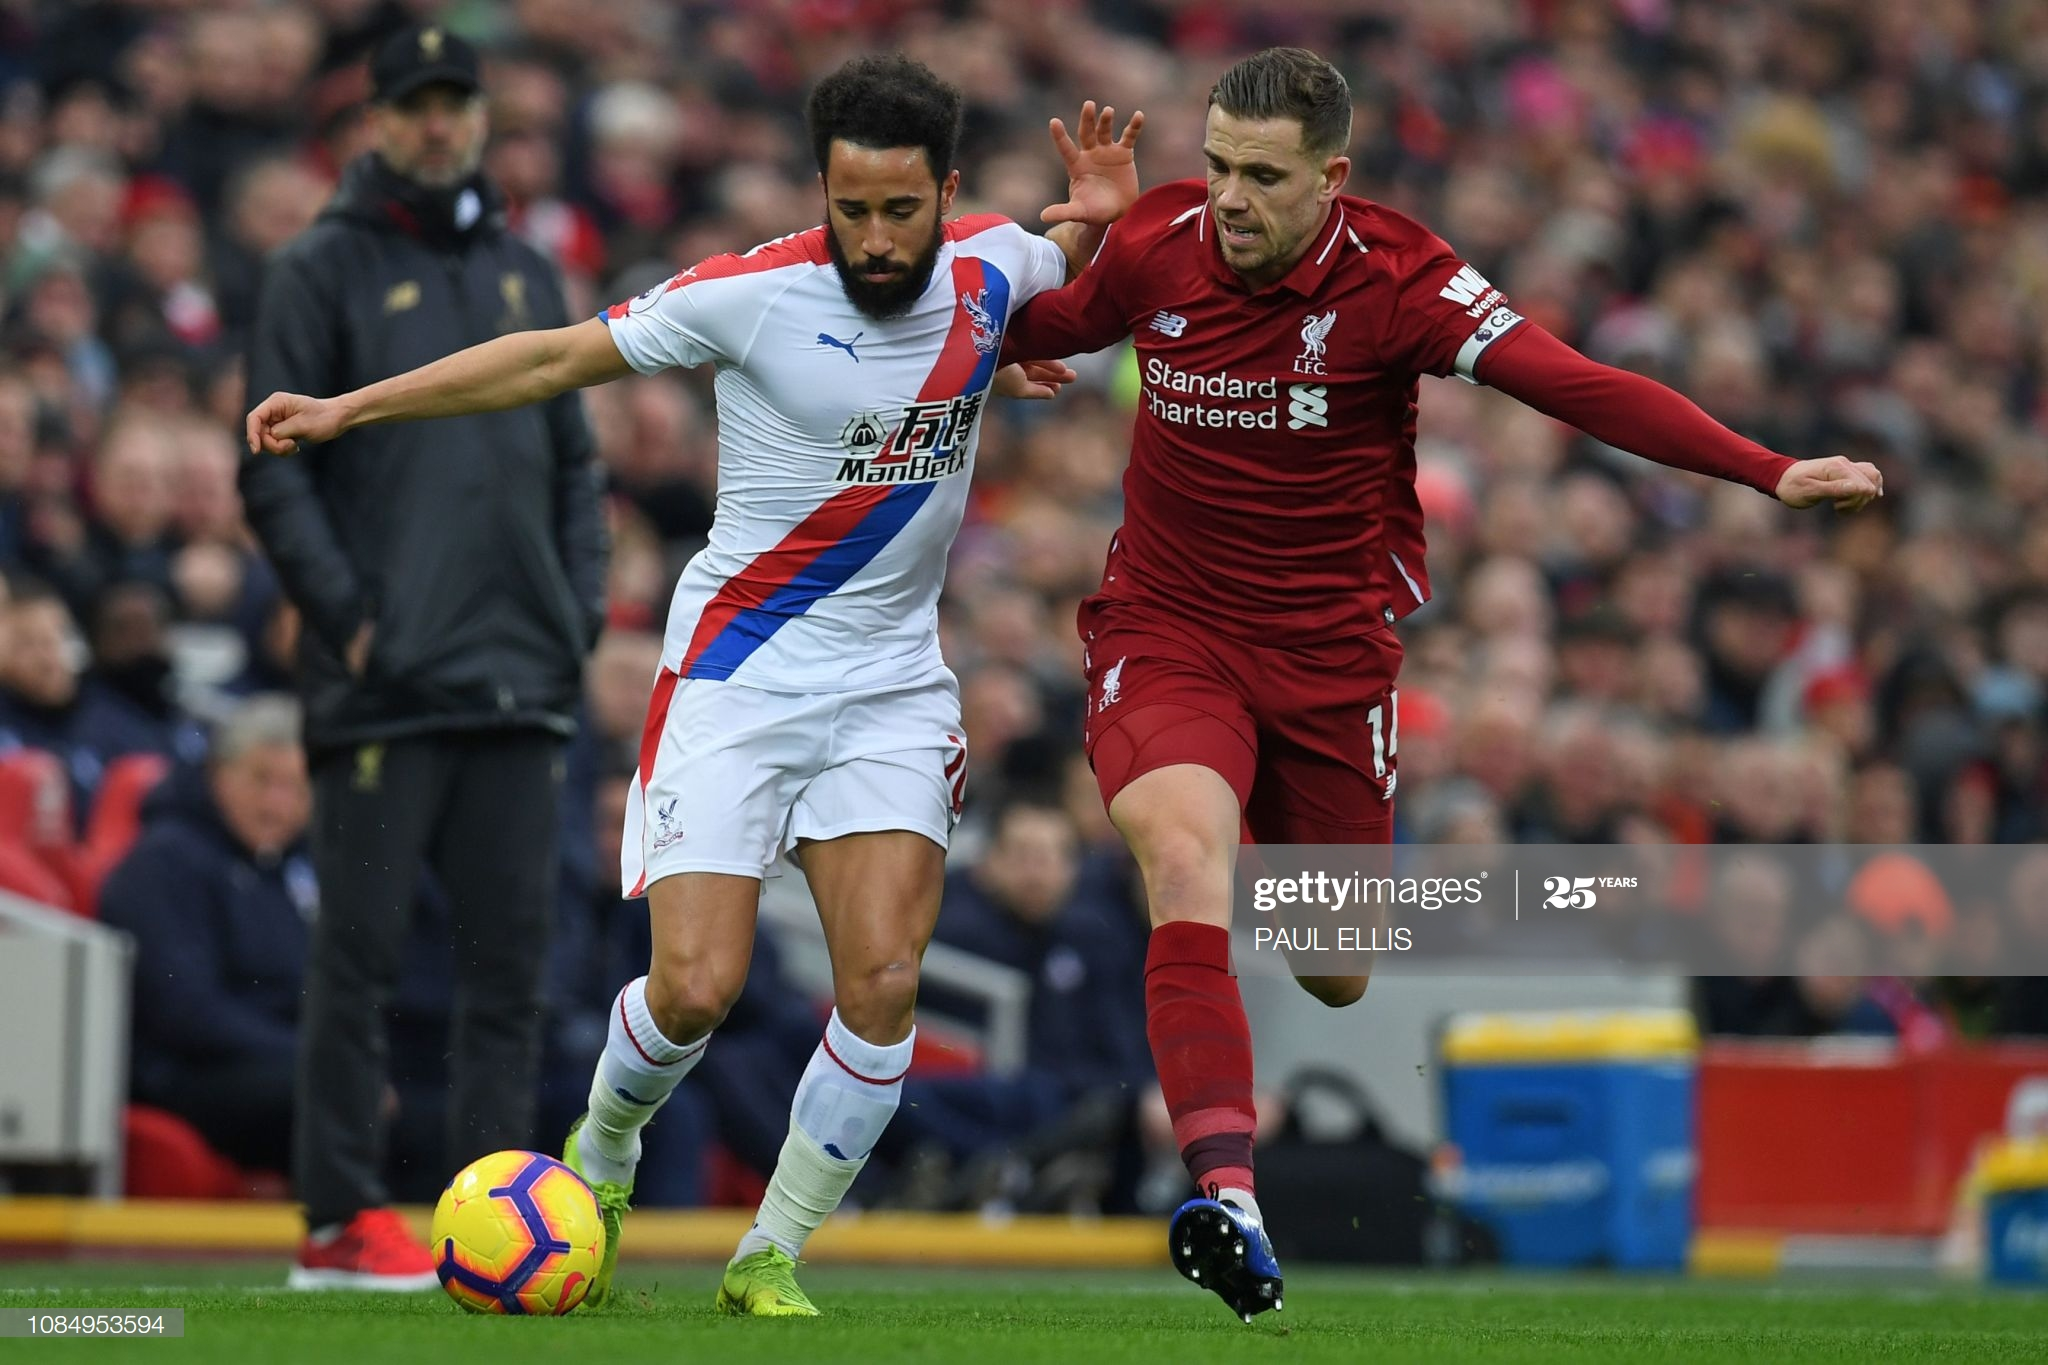 Liverpool vs Crystal Palace, preview, match time and team news